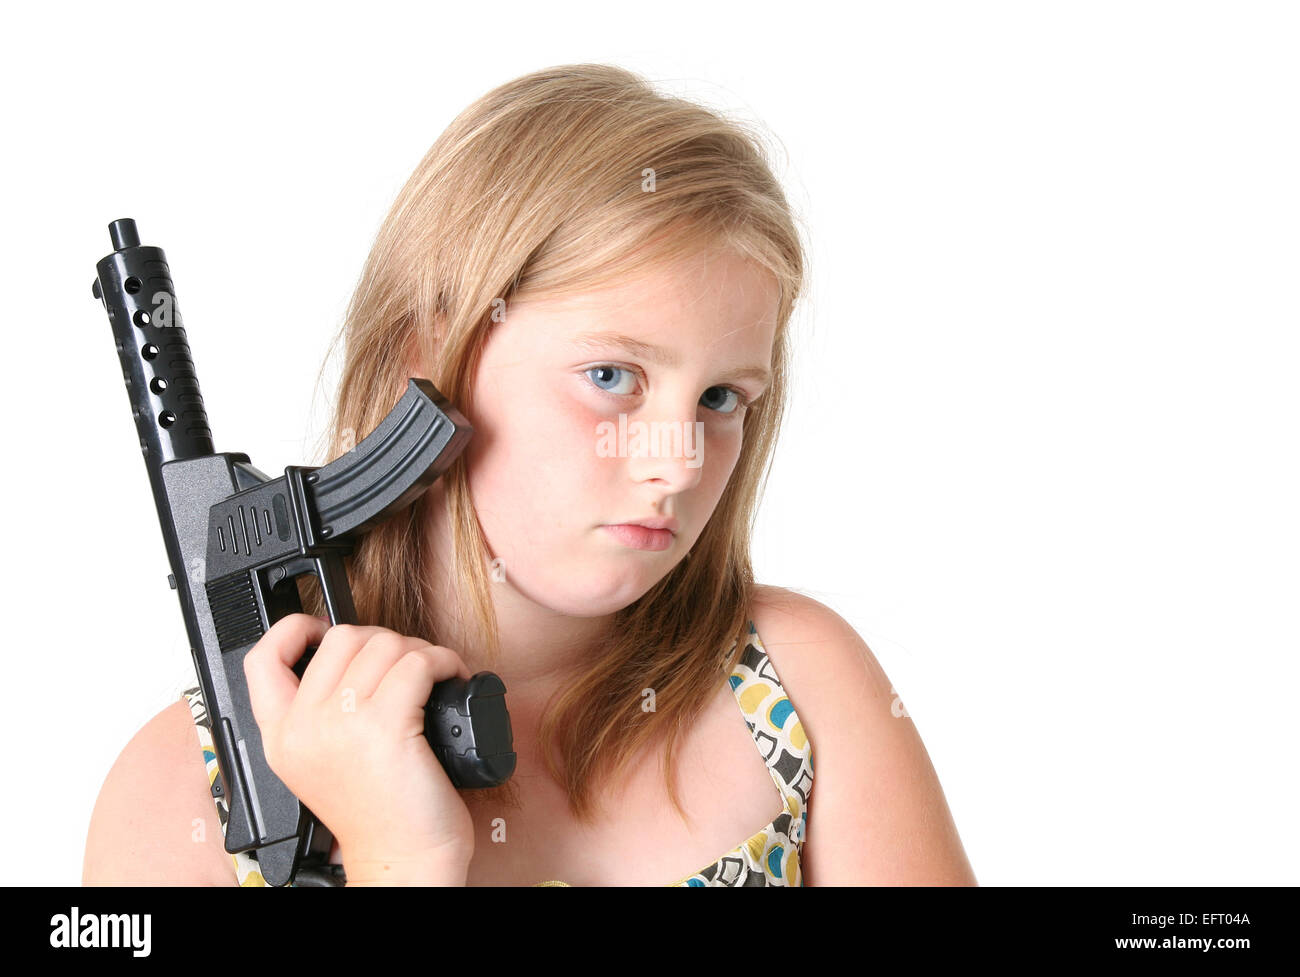 Girl with gun isolé sur blanc. enfant ou adolescent en robe